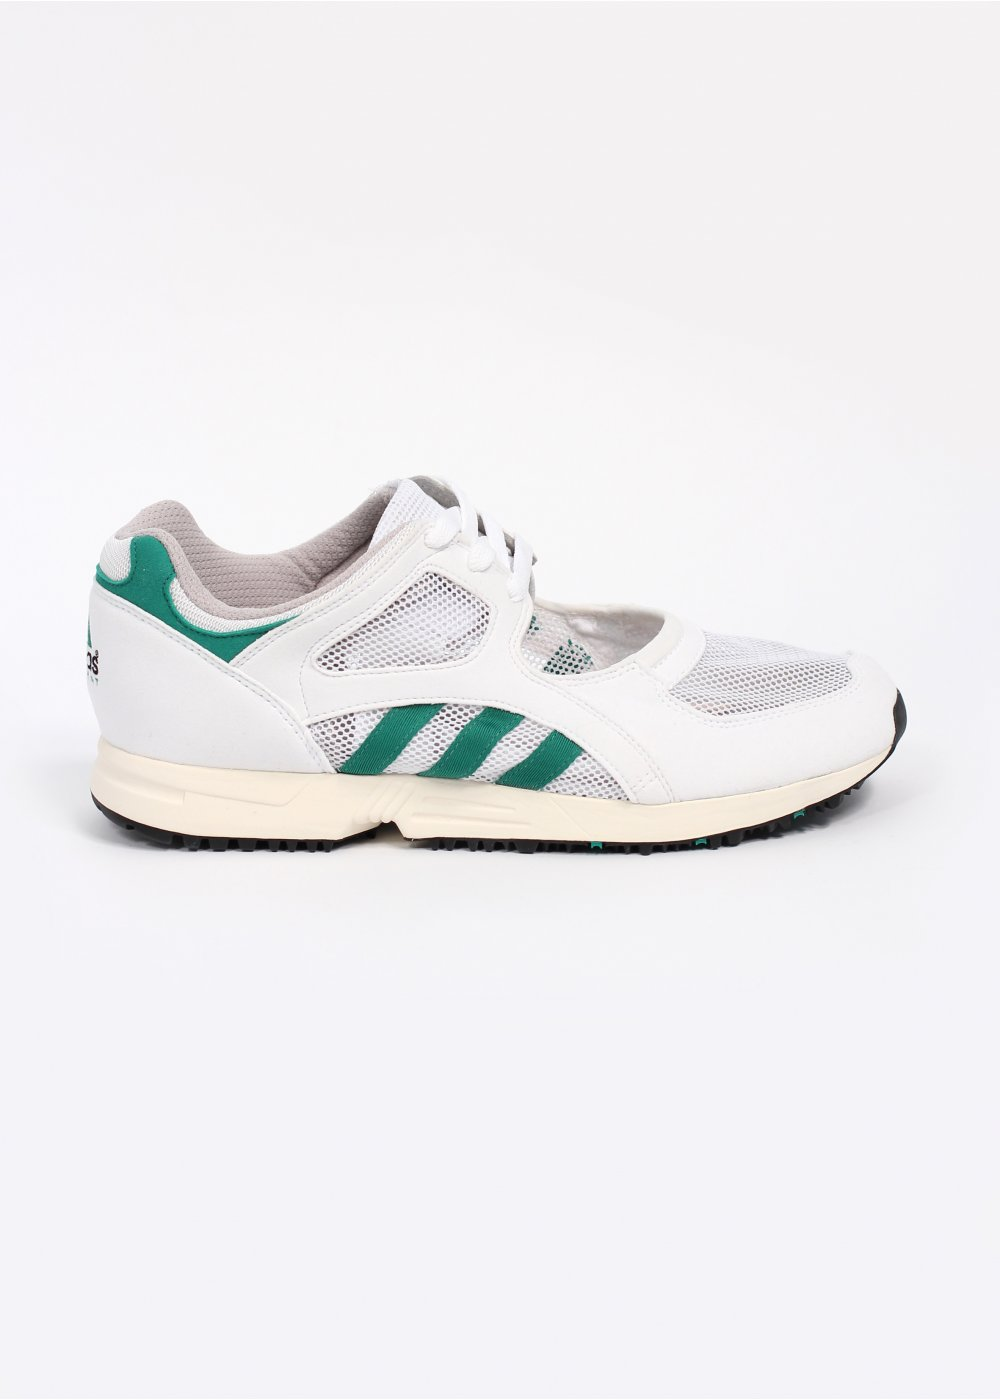 timeless design 6ef2f 8cbf3 adidas Originals Footwear EQT Racing OG Trainer - White / Green